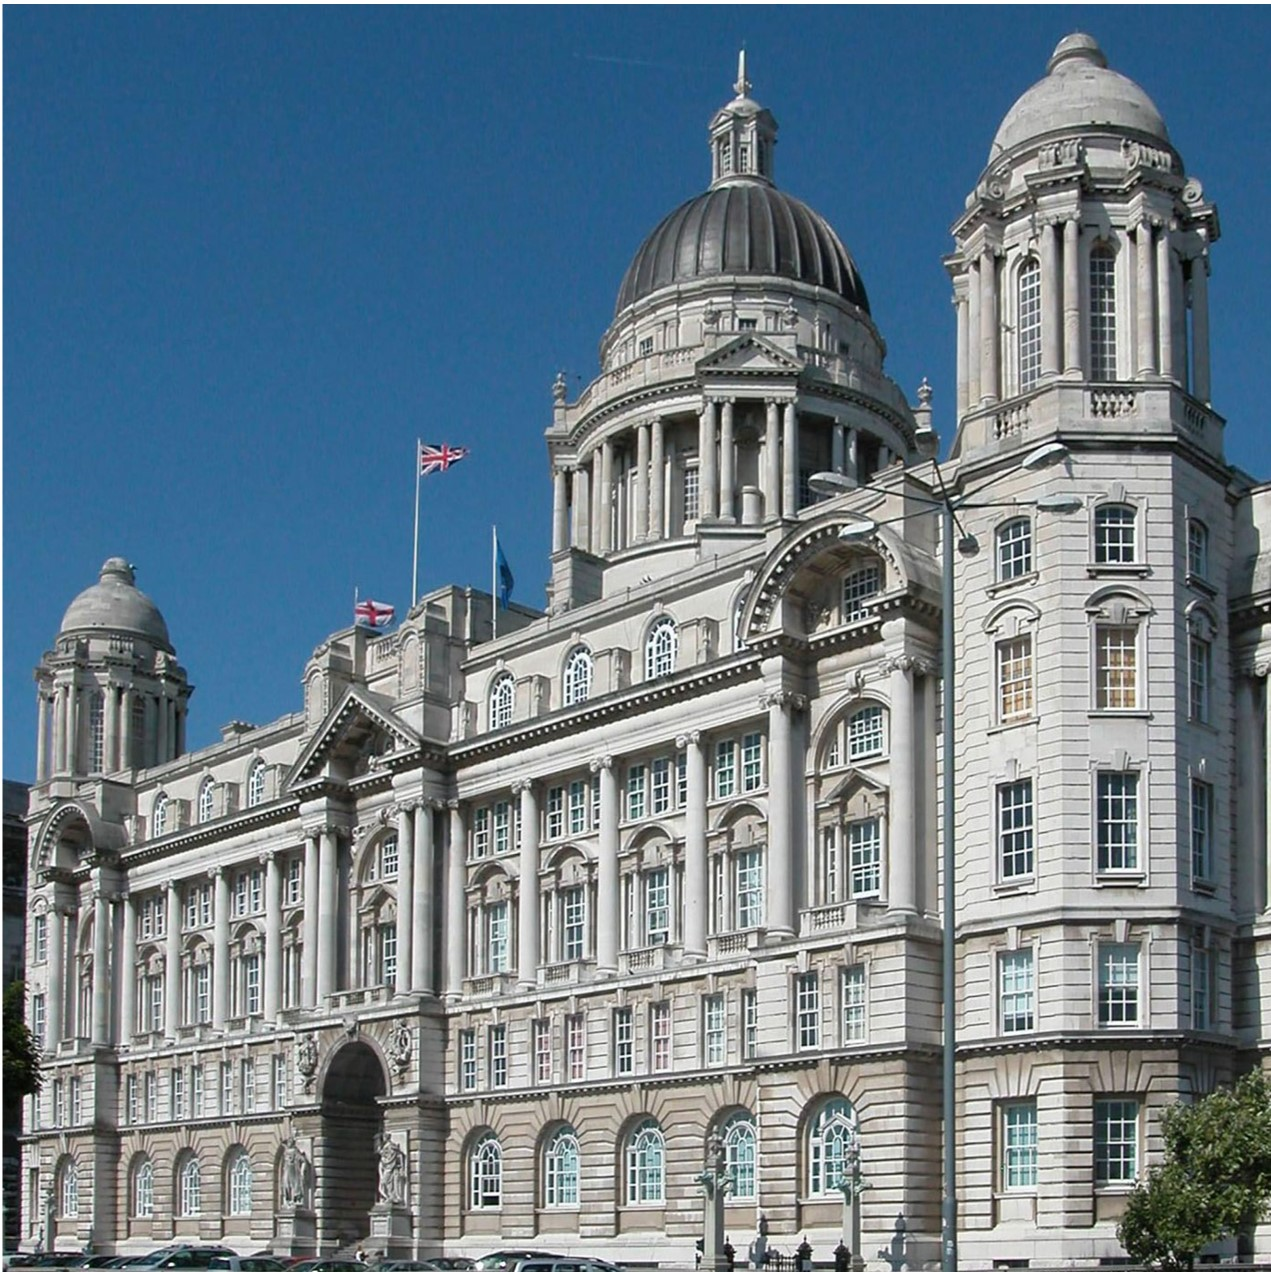 CBRE SUBMITS PLANS TO TRANSFORM PORT OF LIVERPOOL BUILDING